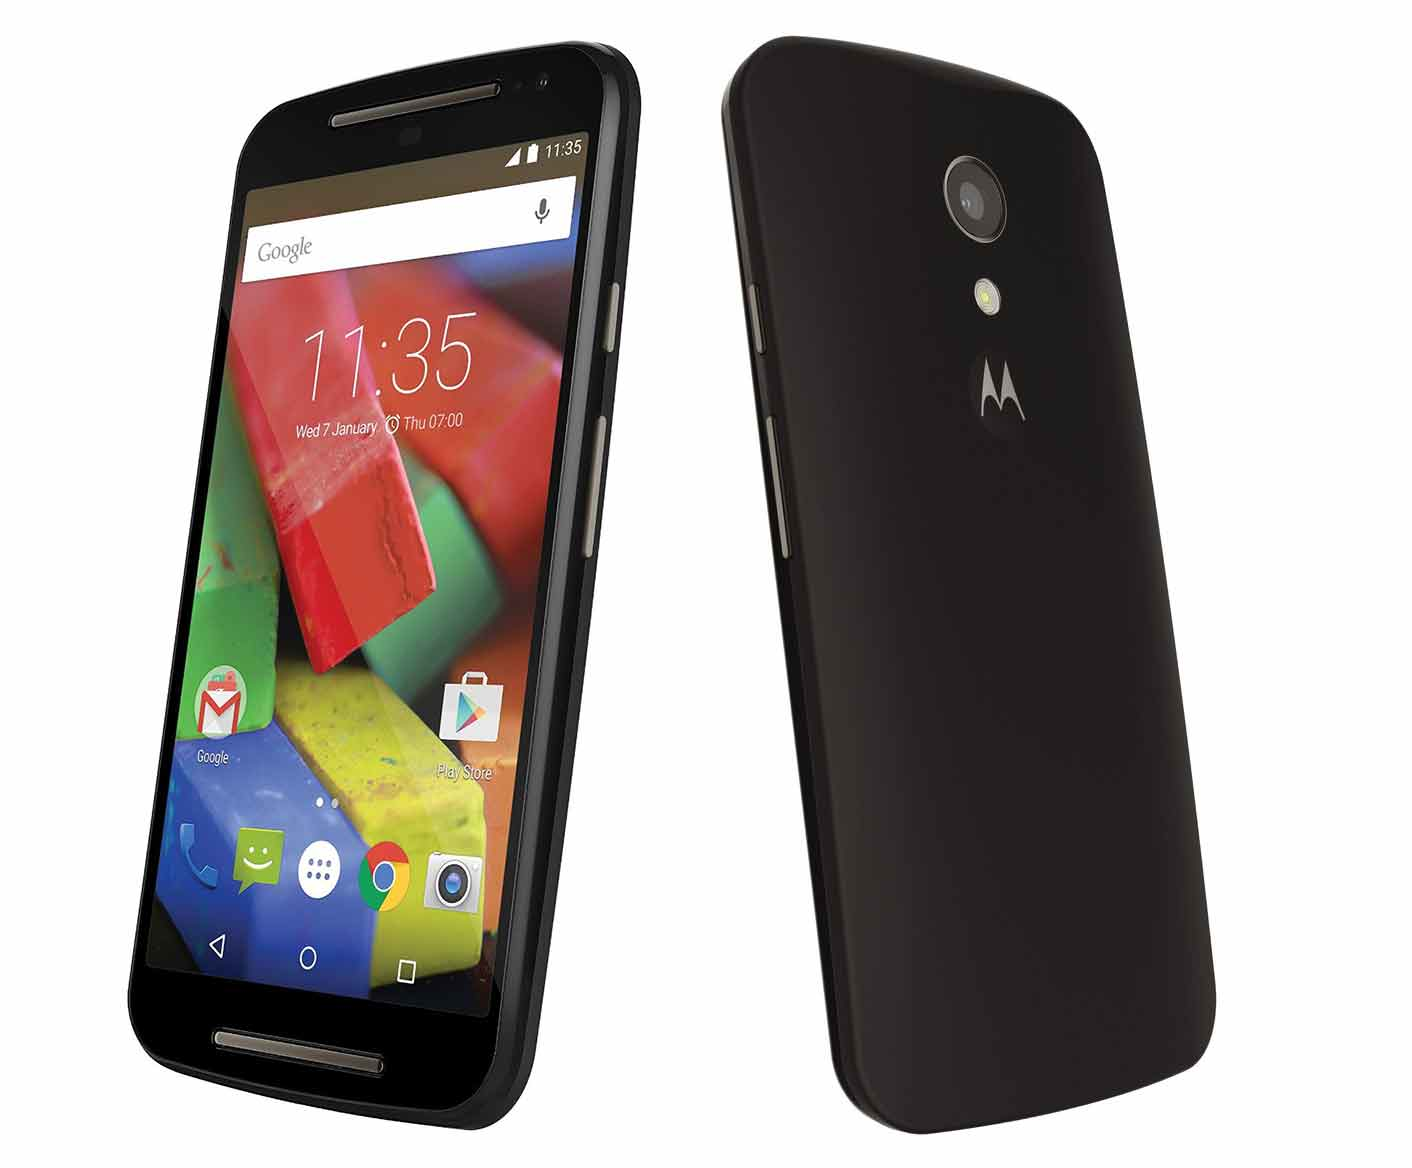 motorola moto g 4g 2nd gen g2 xt1072 price review specifications features pros cons. Black Bedroom Furniture Sets. Home Design Ideas